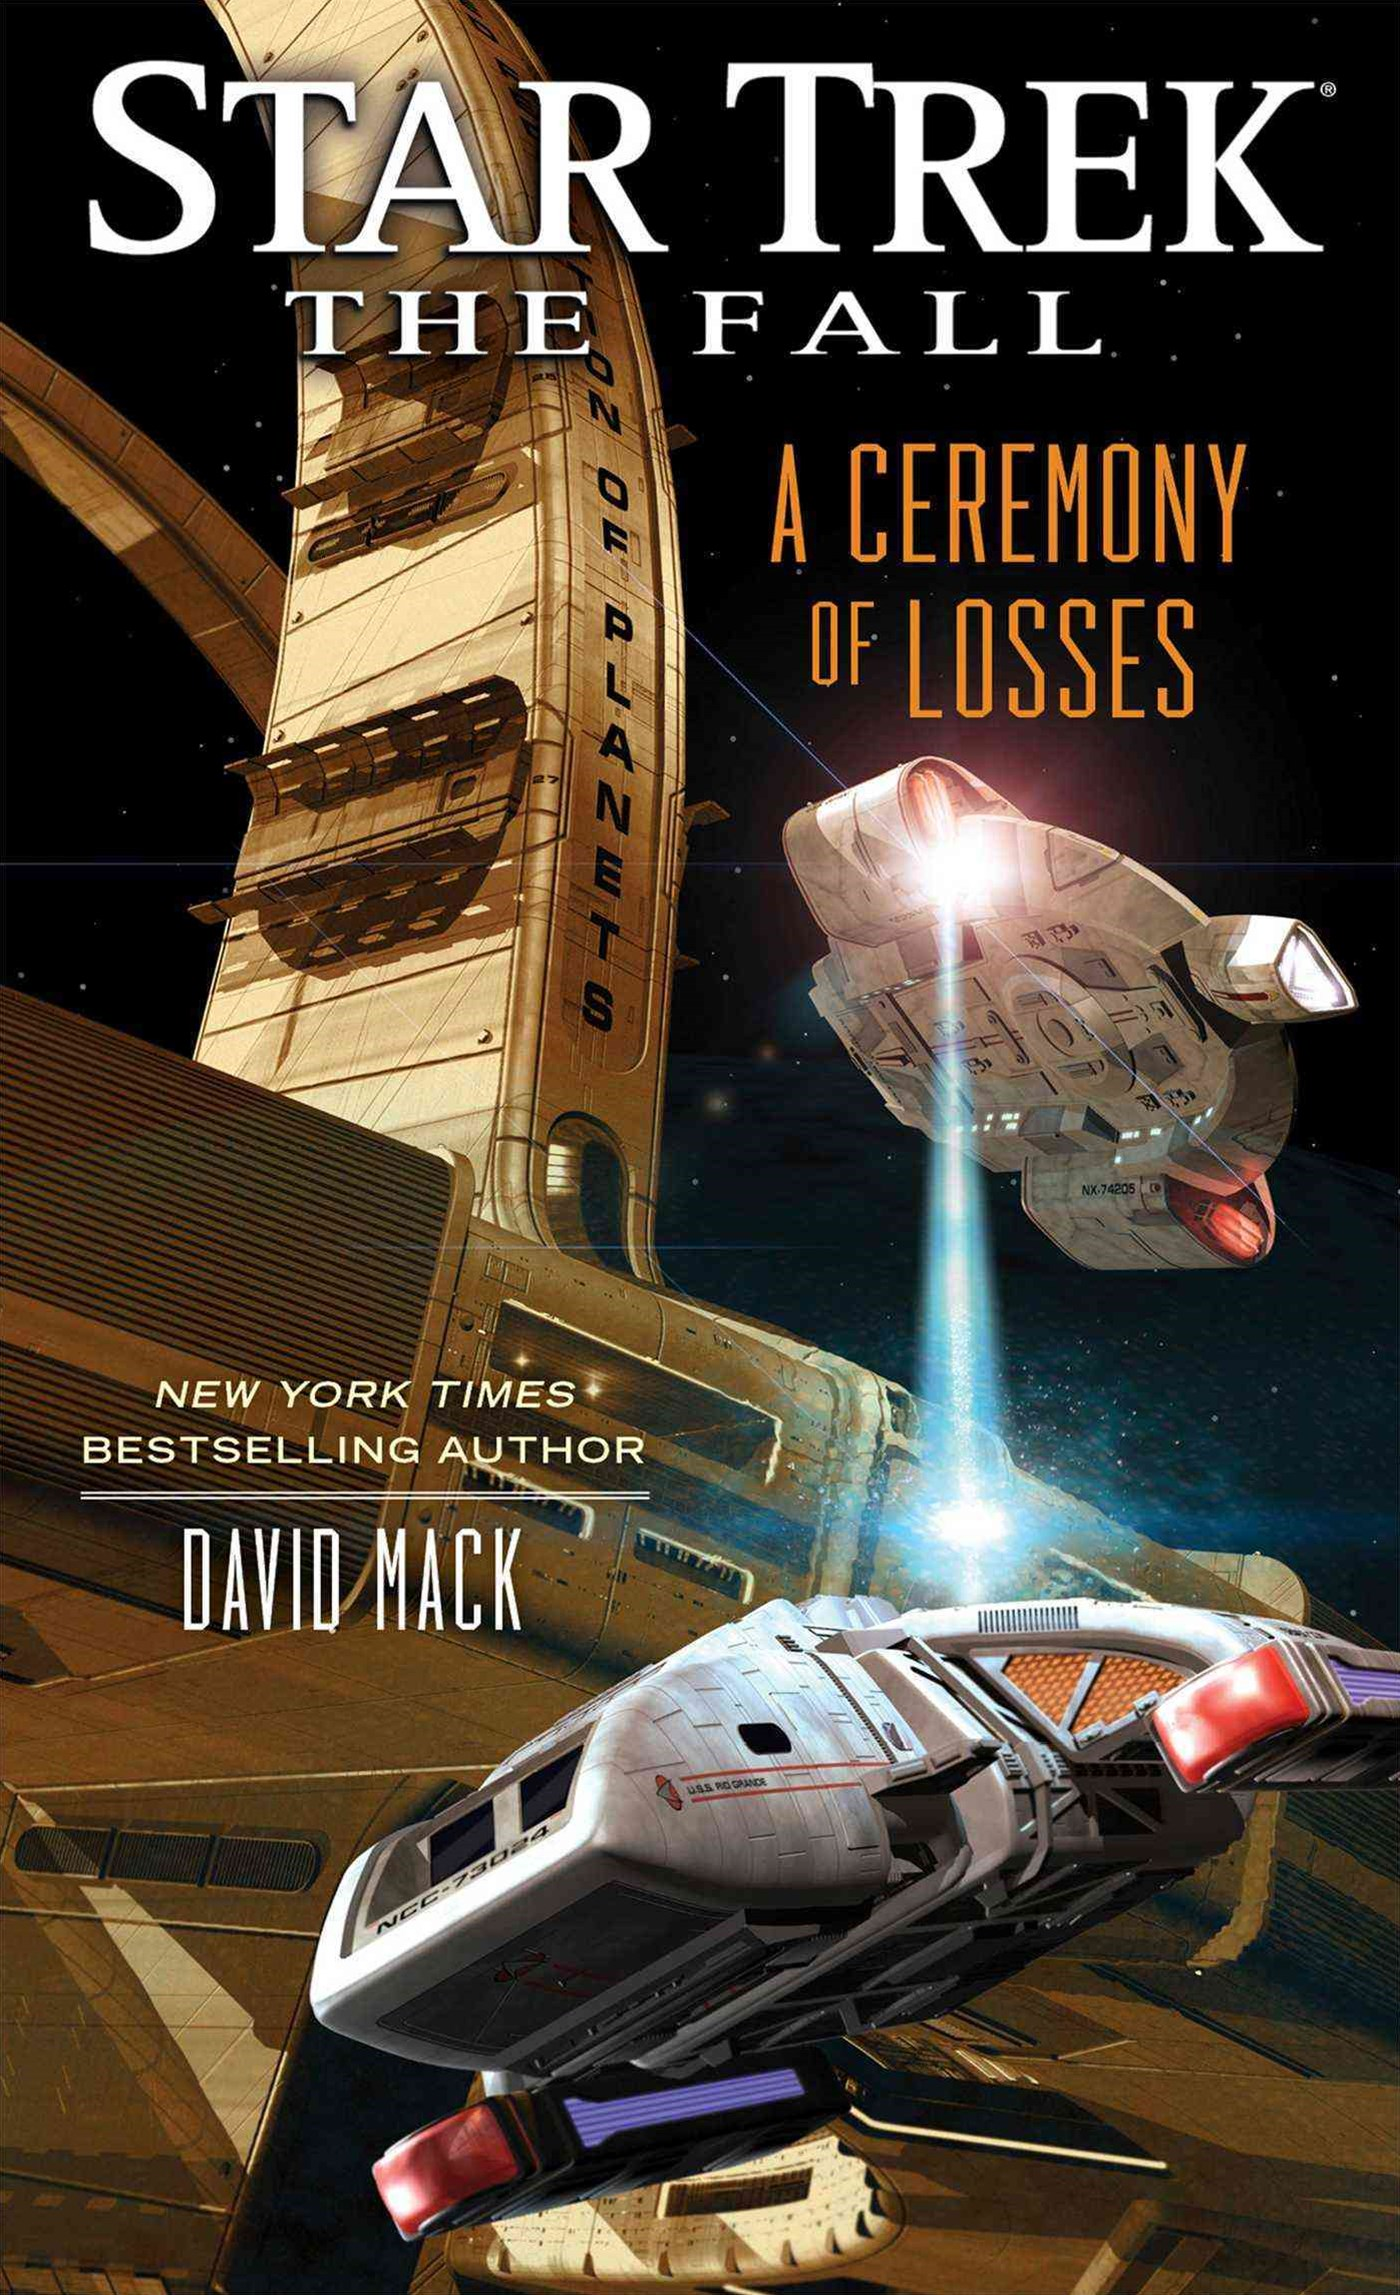 Star Trek: The Fall: A Ceremony of Losse